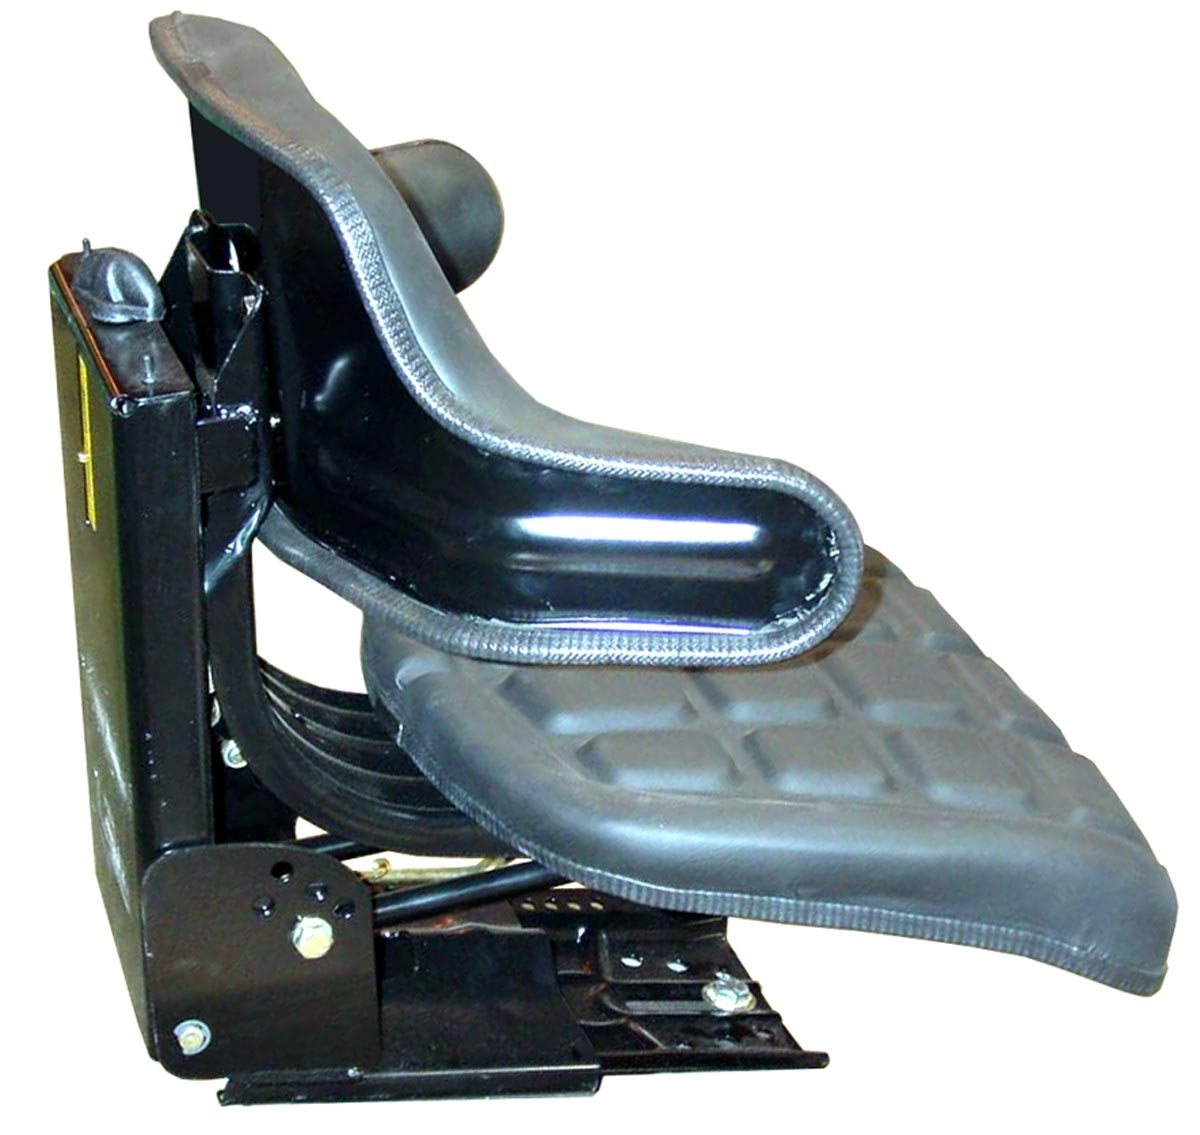 Tractor Seat Suspension Parts : Universal full suspension seat case ih parts